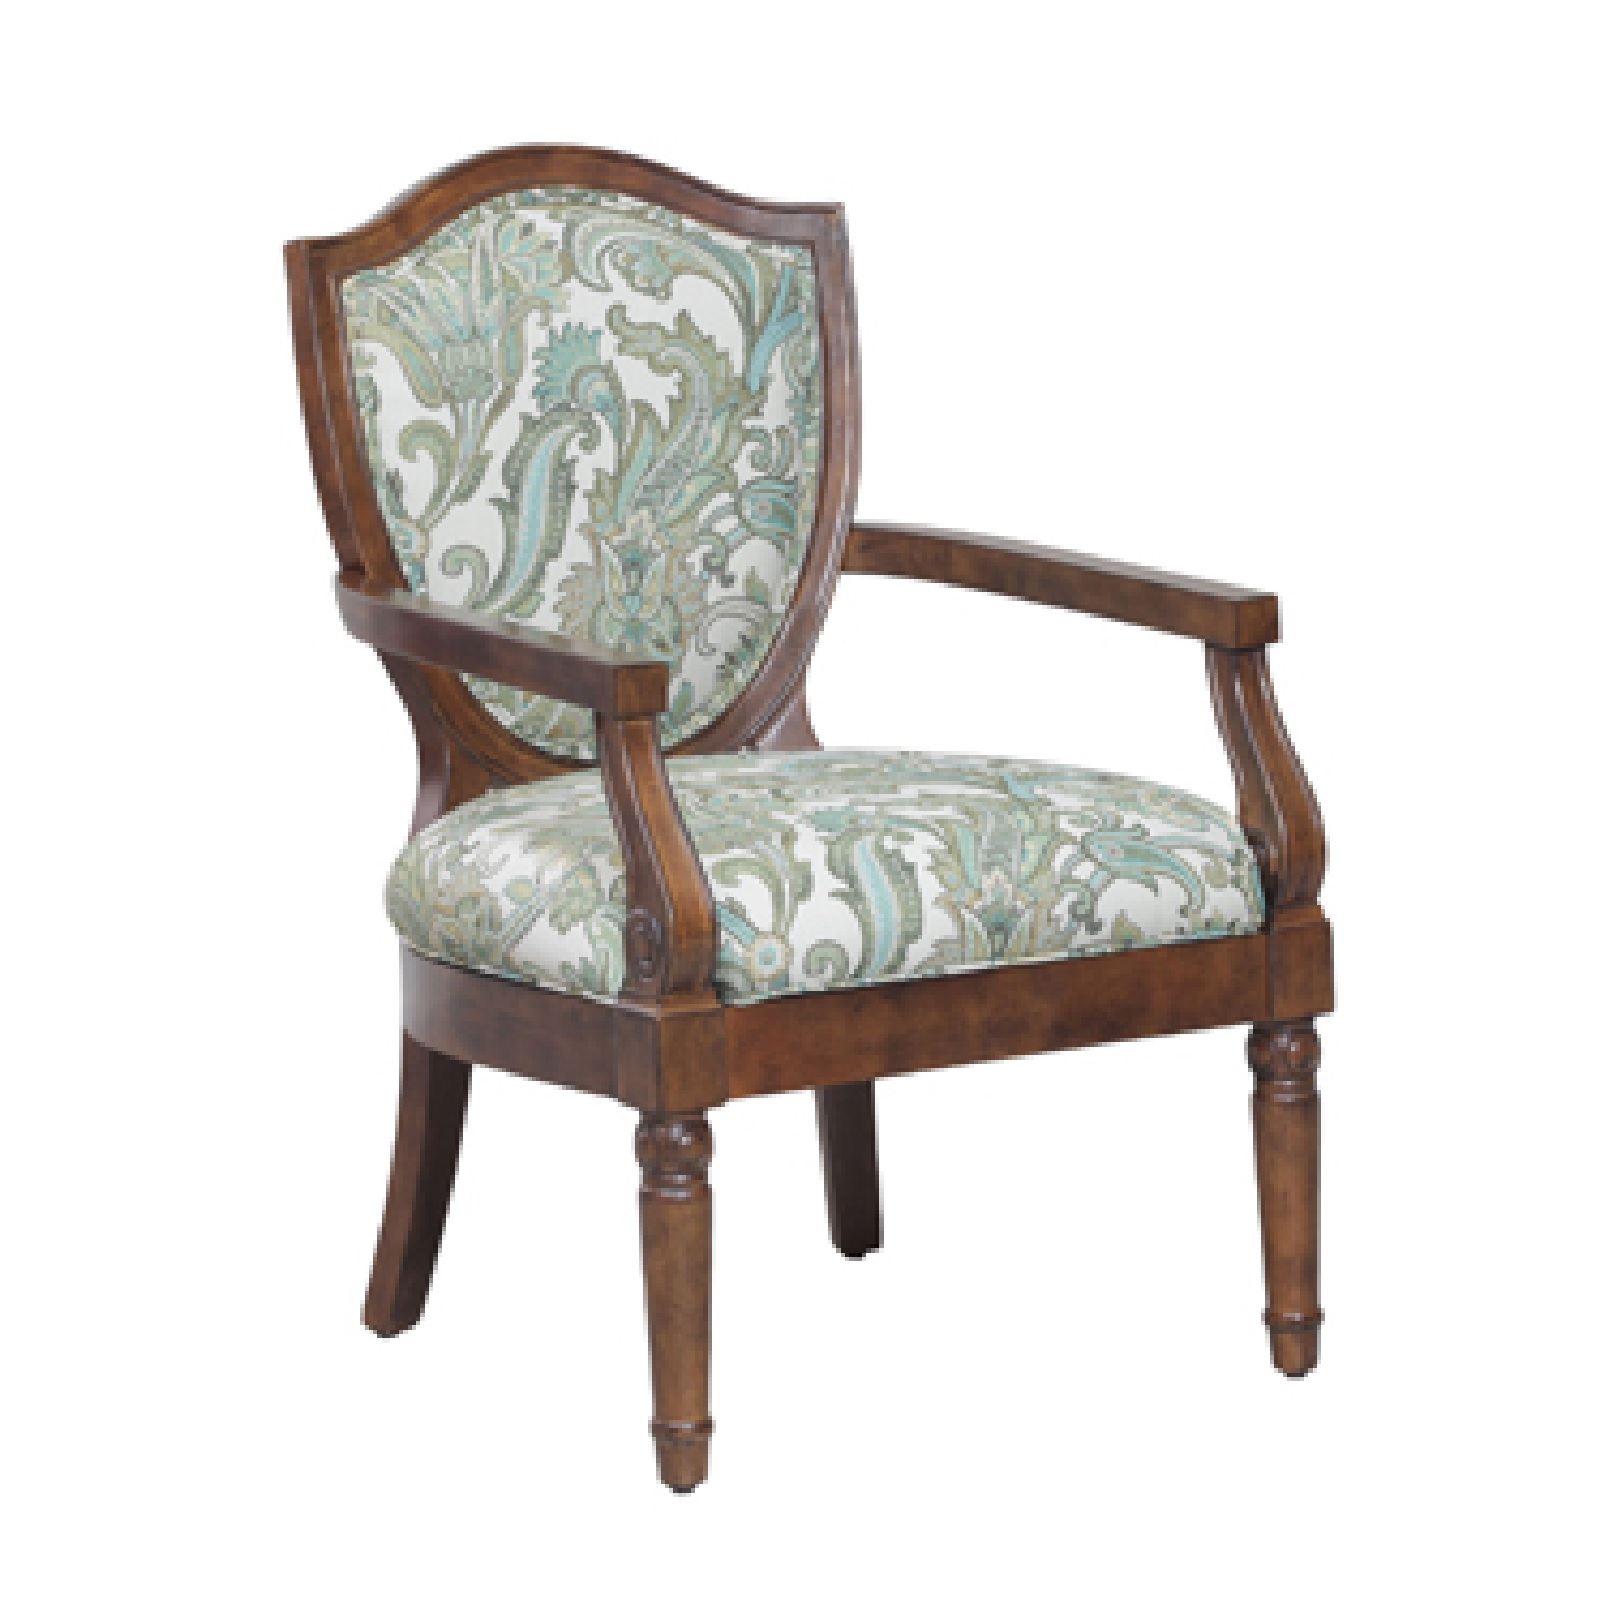 sears accent chairs body built review curved chair kmart